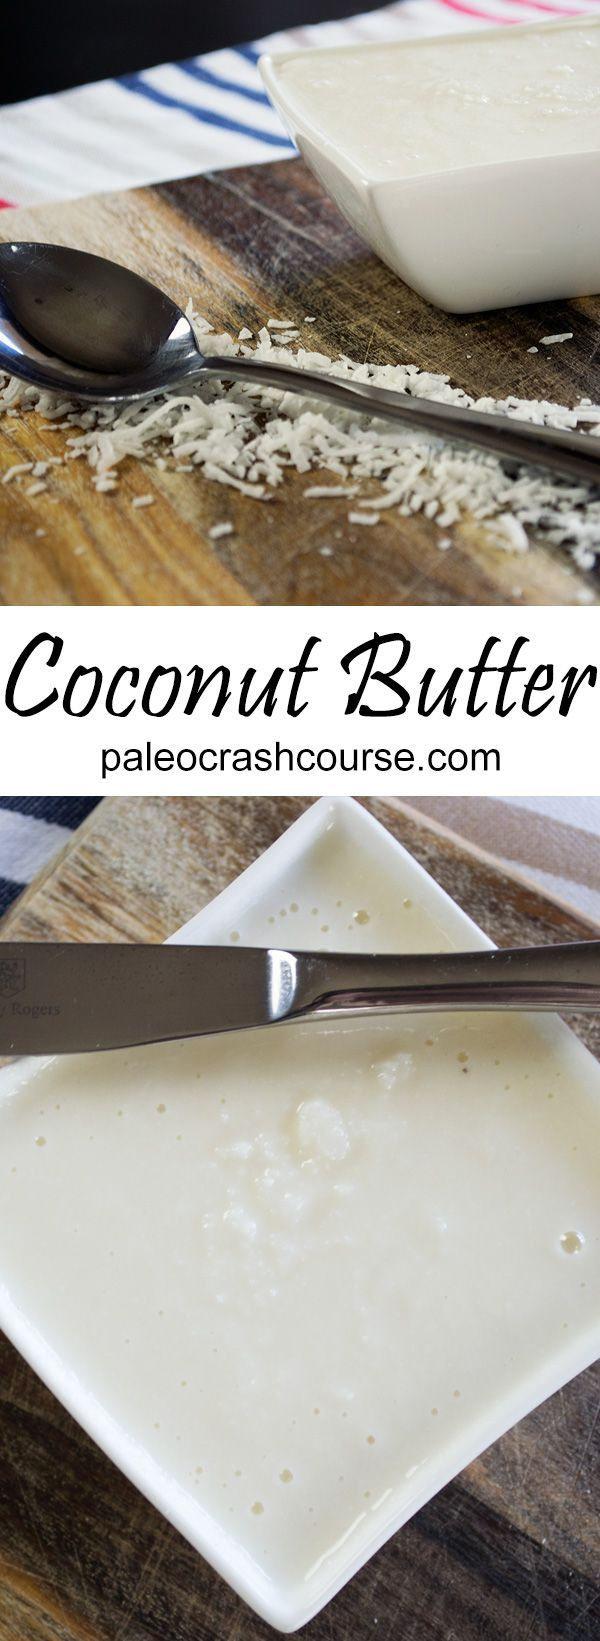 Making coconut butter at home is super easy! All you need is a food processor and some shredded coconut. The end result is a rich coconut butter that can be used for many things!